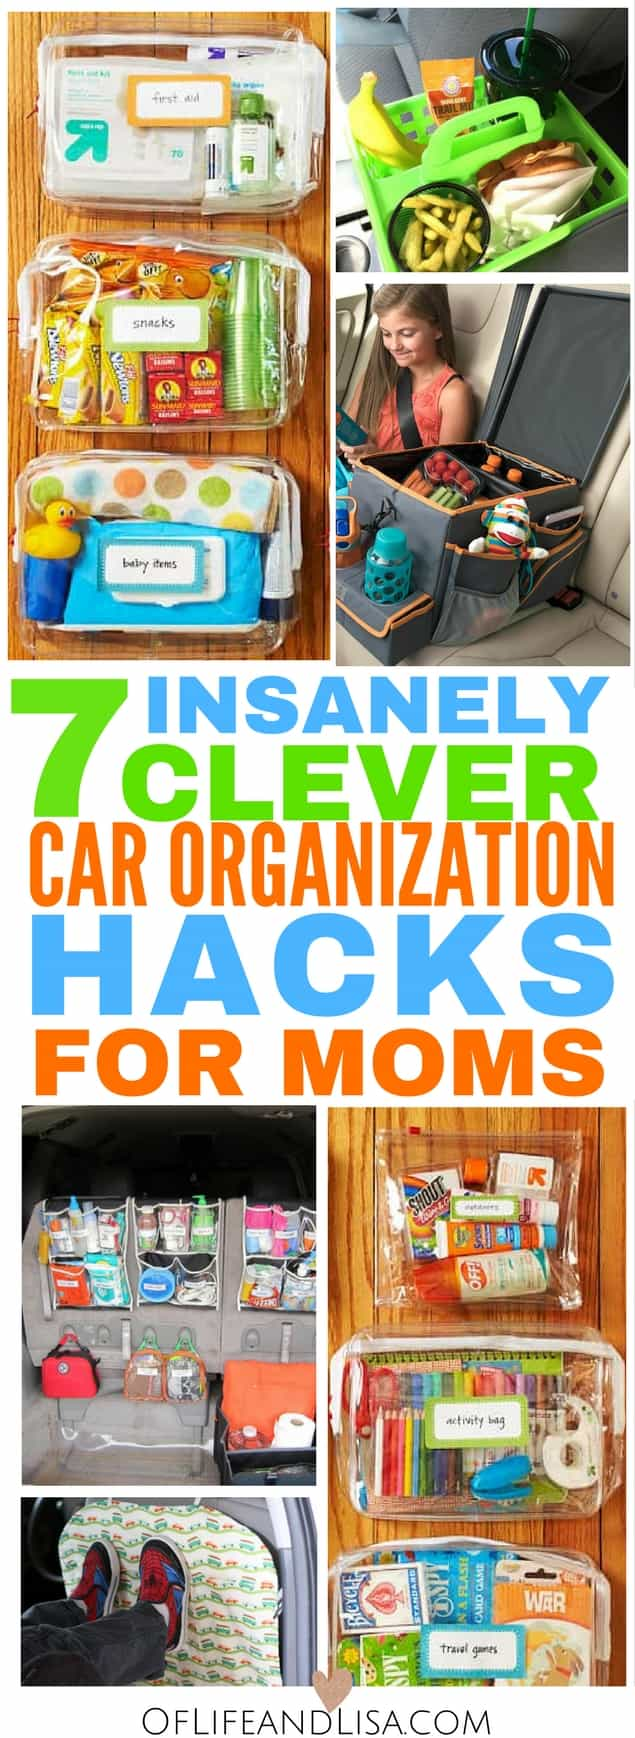 Life Hacks For Moms 100 Organization Hacks 5 Diy Room Decor And Desk